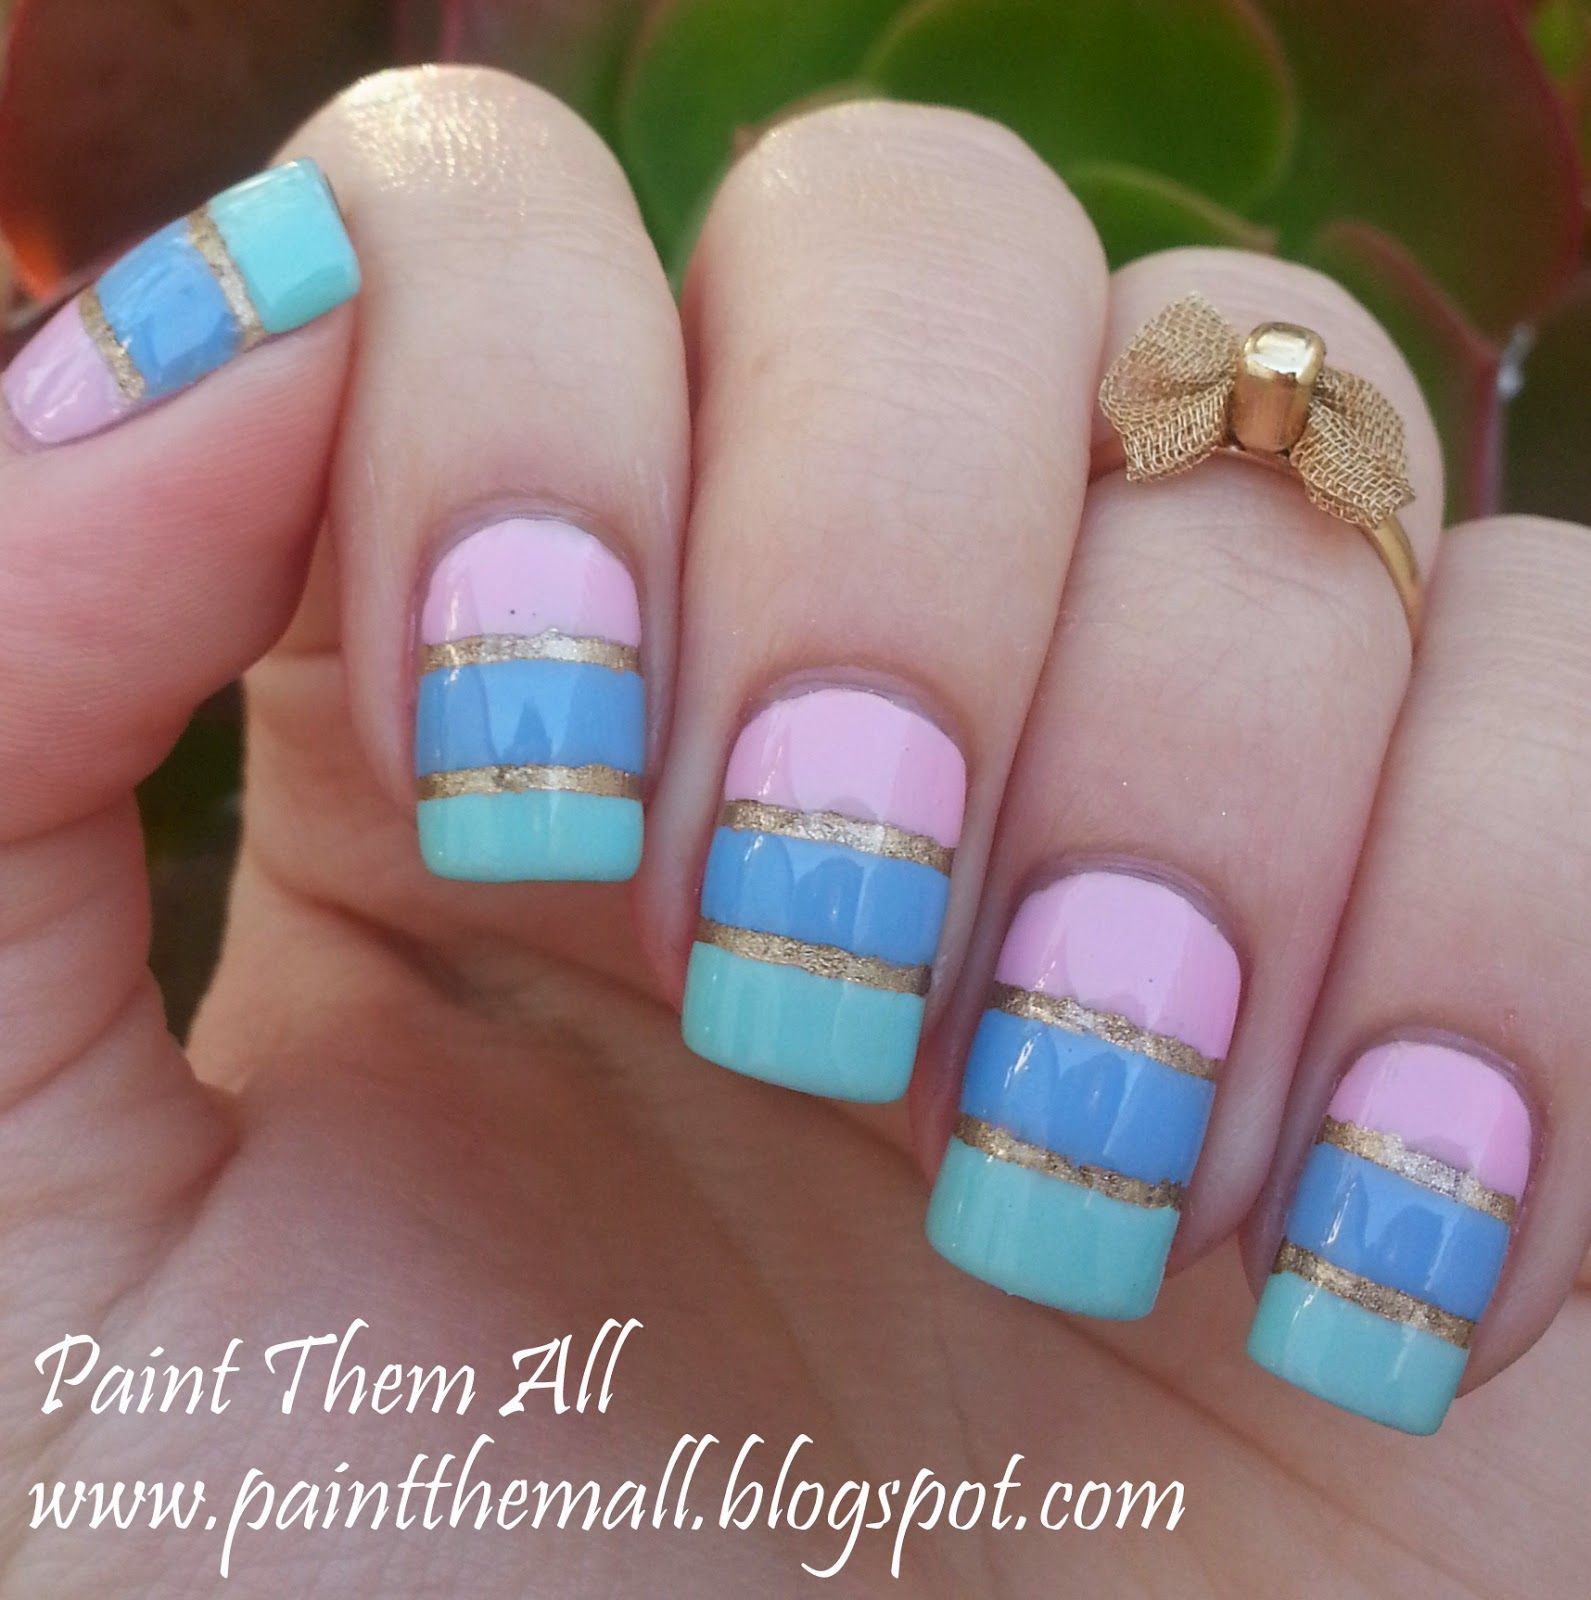 Paint Them All: Baby Pink And Mint Green   The Perfect Spring Color Combo